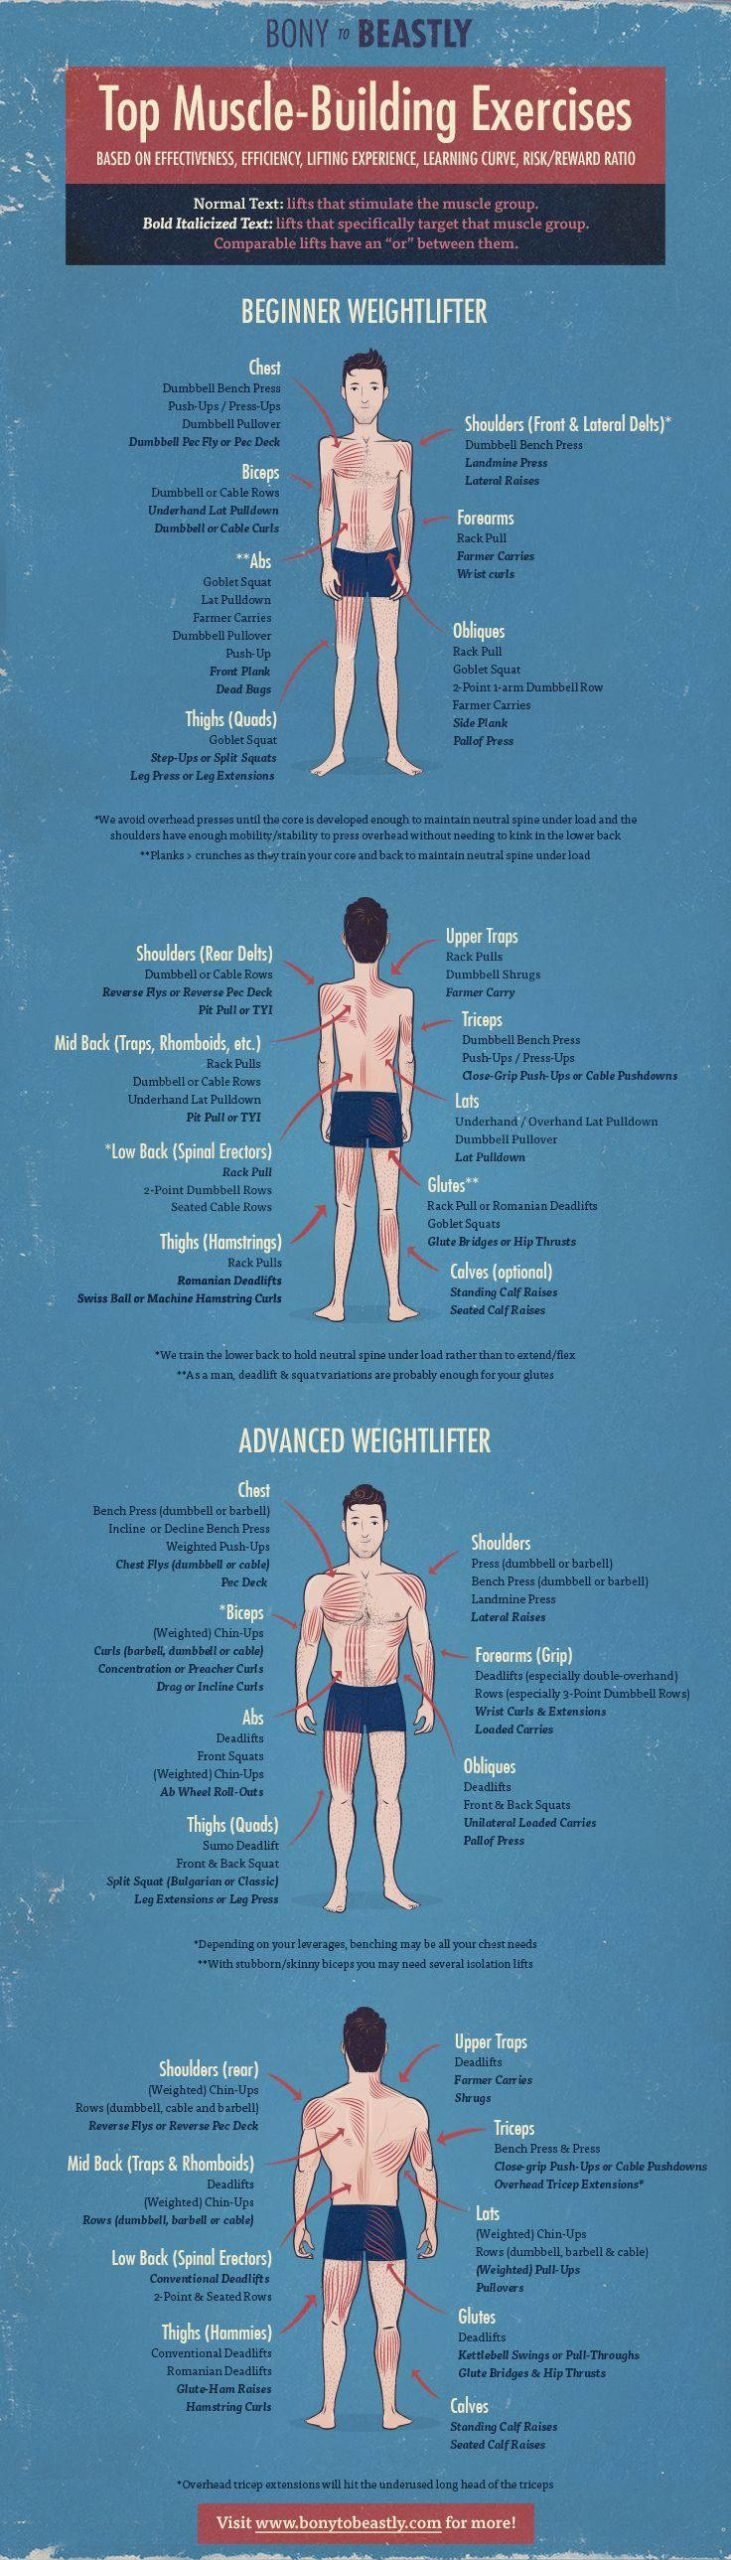 muscle building exercises infographic